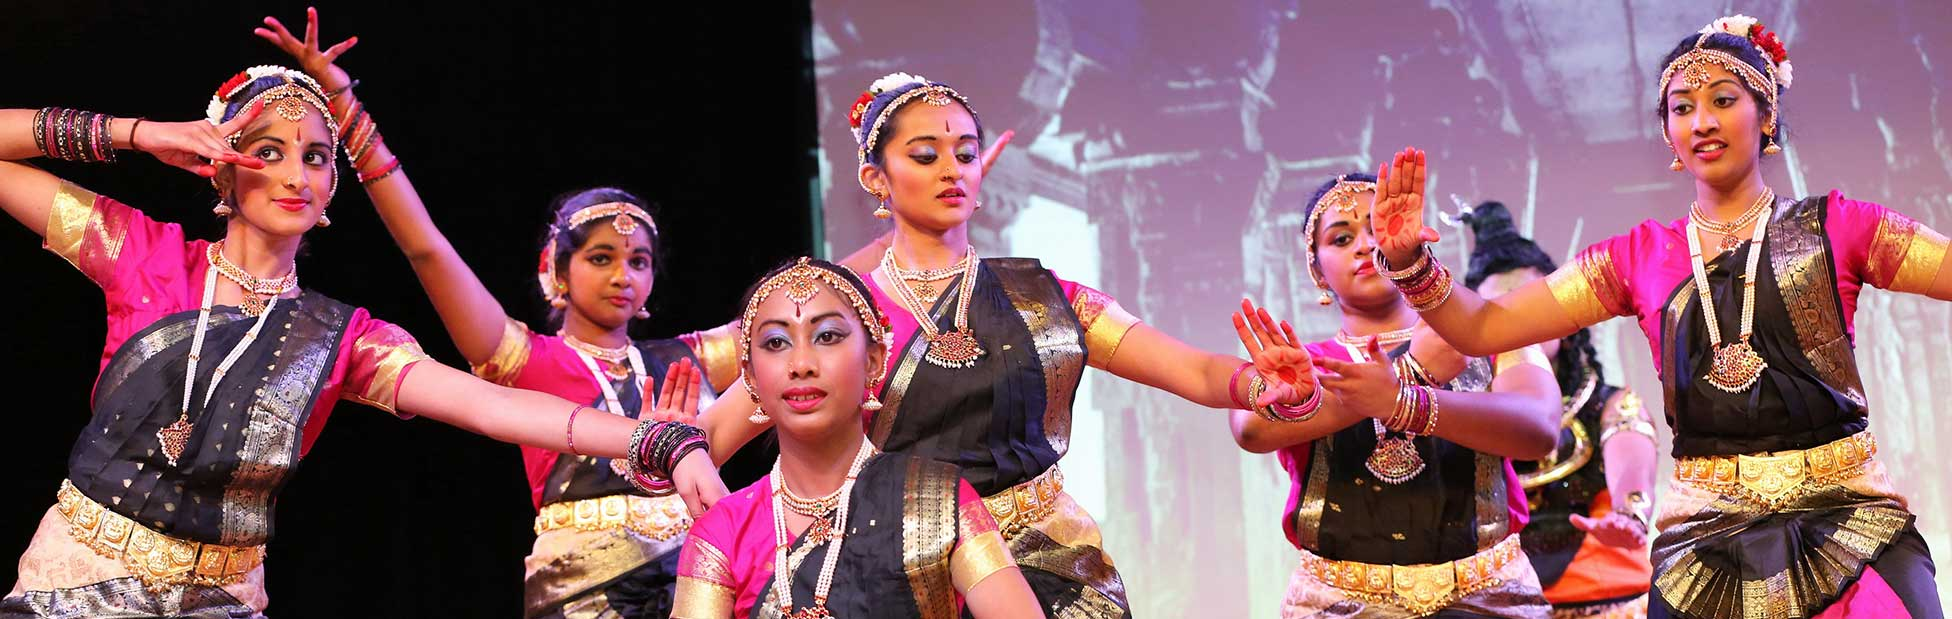 Indian dancers on stage performing